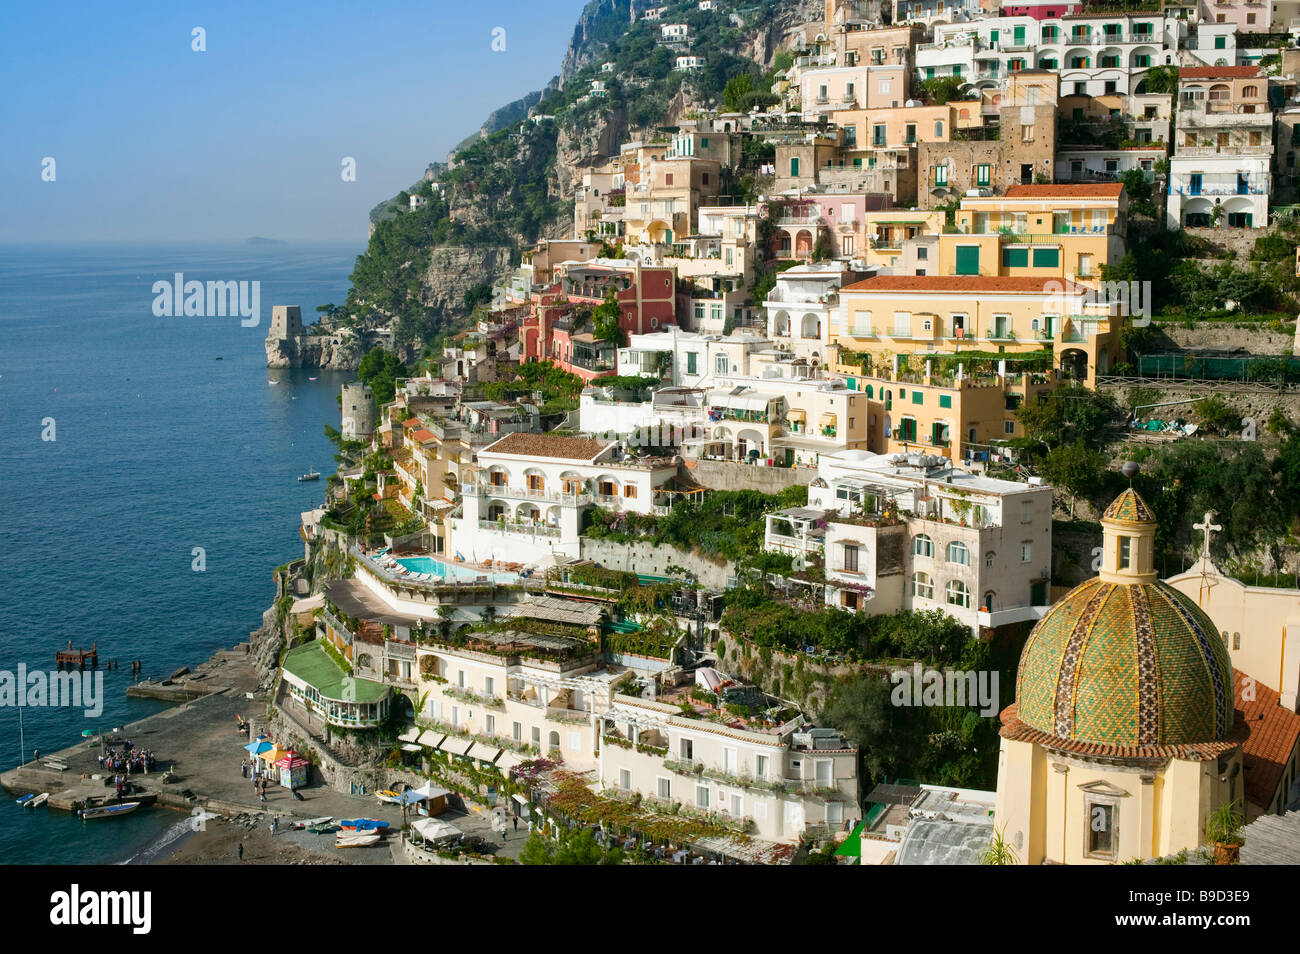 Positano Amalfi coast Salerno Italy Stock Photo